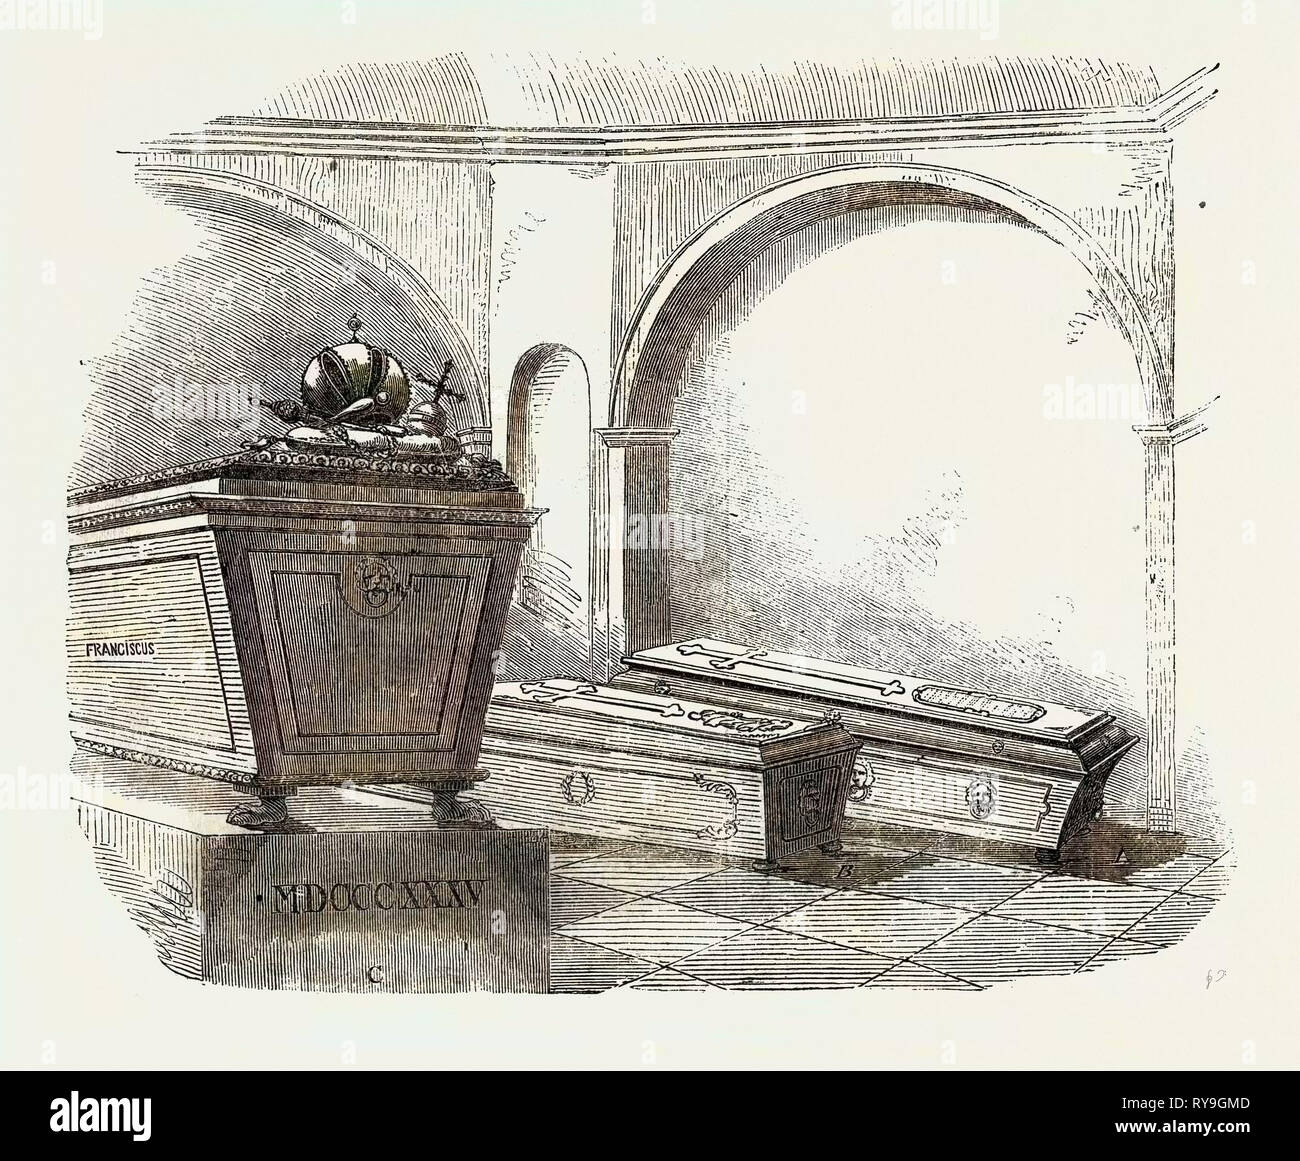 Tomb of Napoleon II., in the Imperial Vault, in the Church of the Capuchins, at Vienna Stock Photo